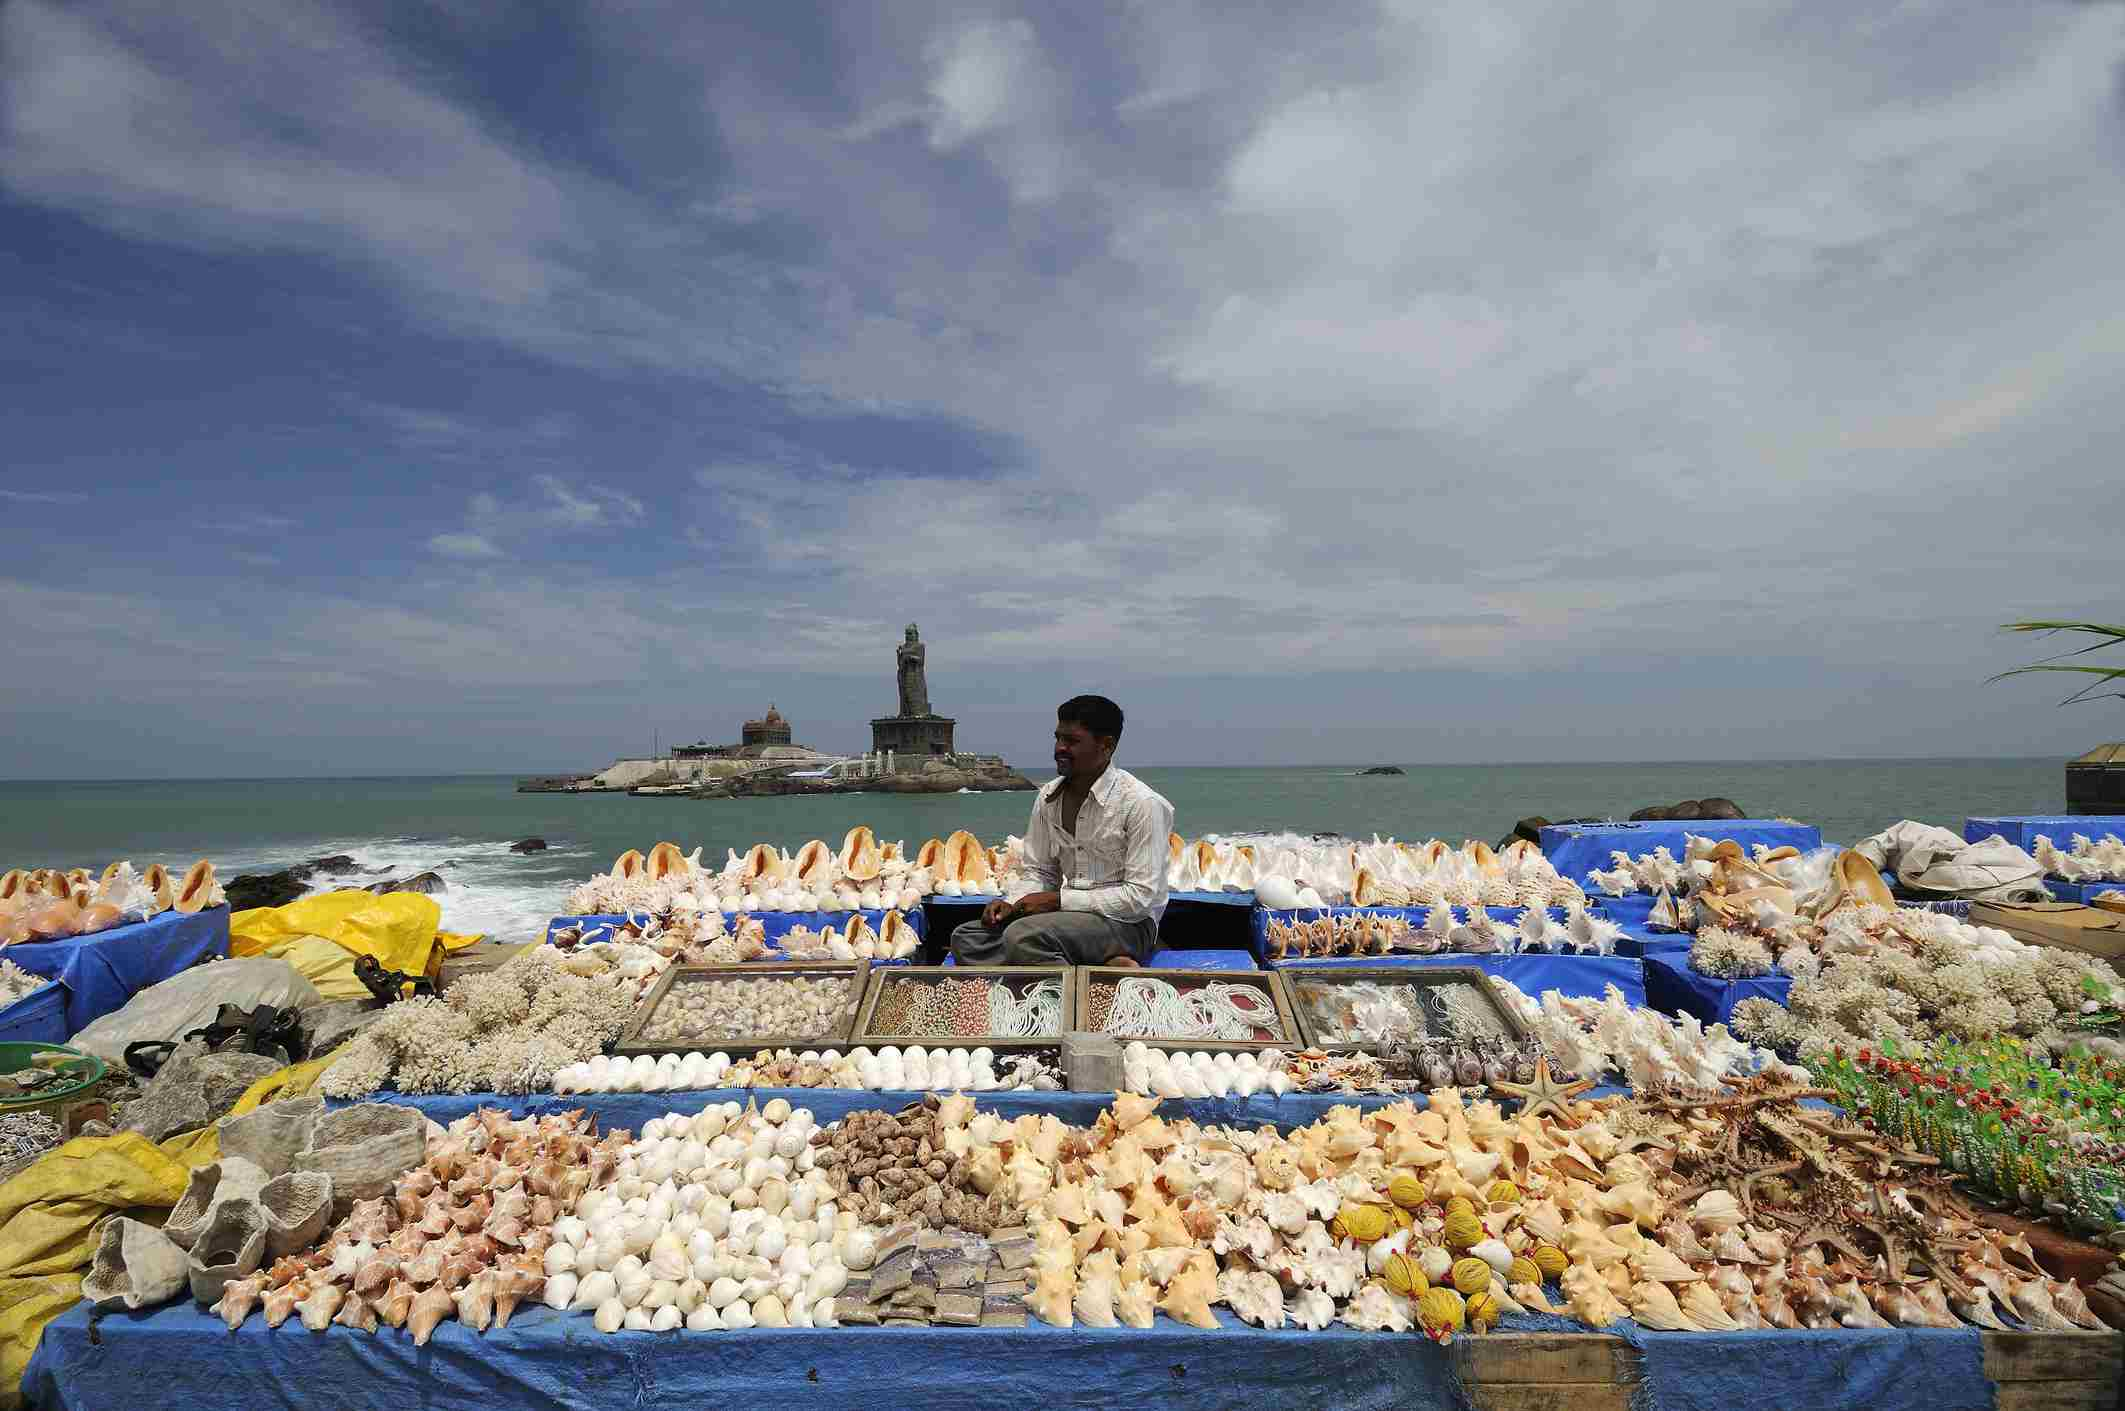 The Top 11 Things to Do in Kanyakumari